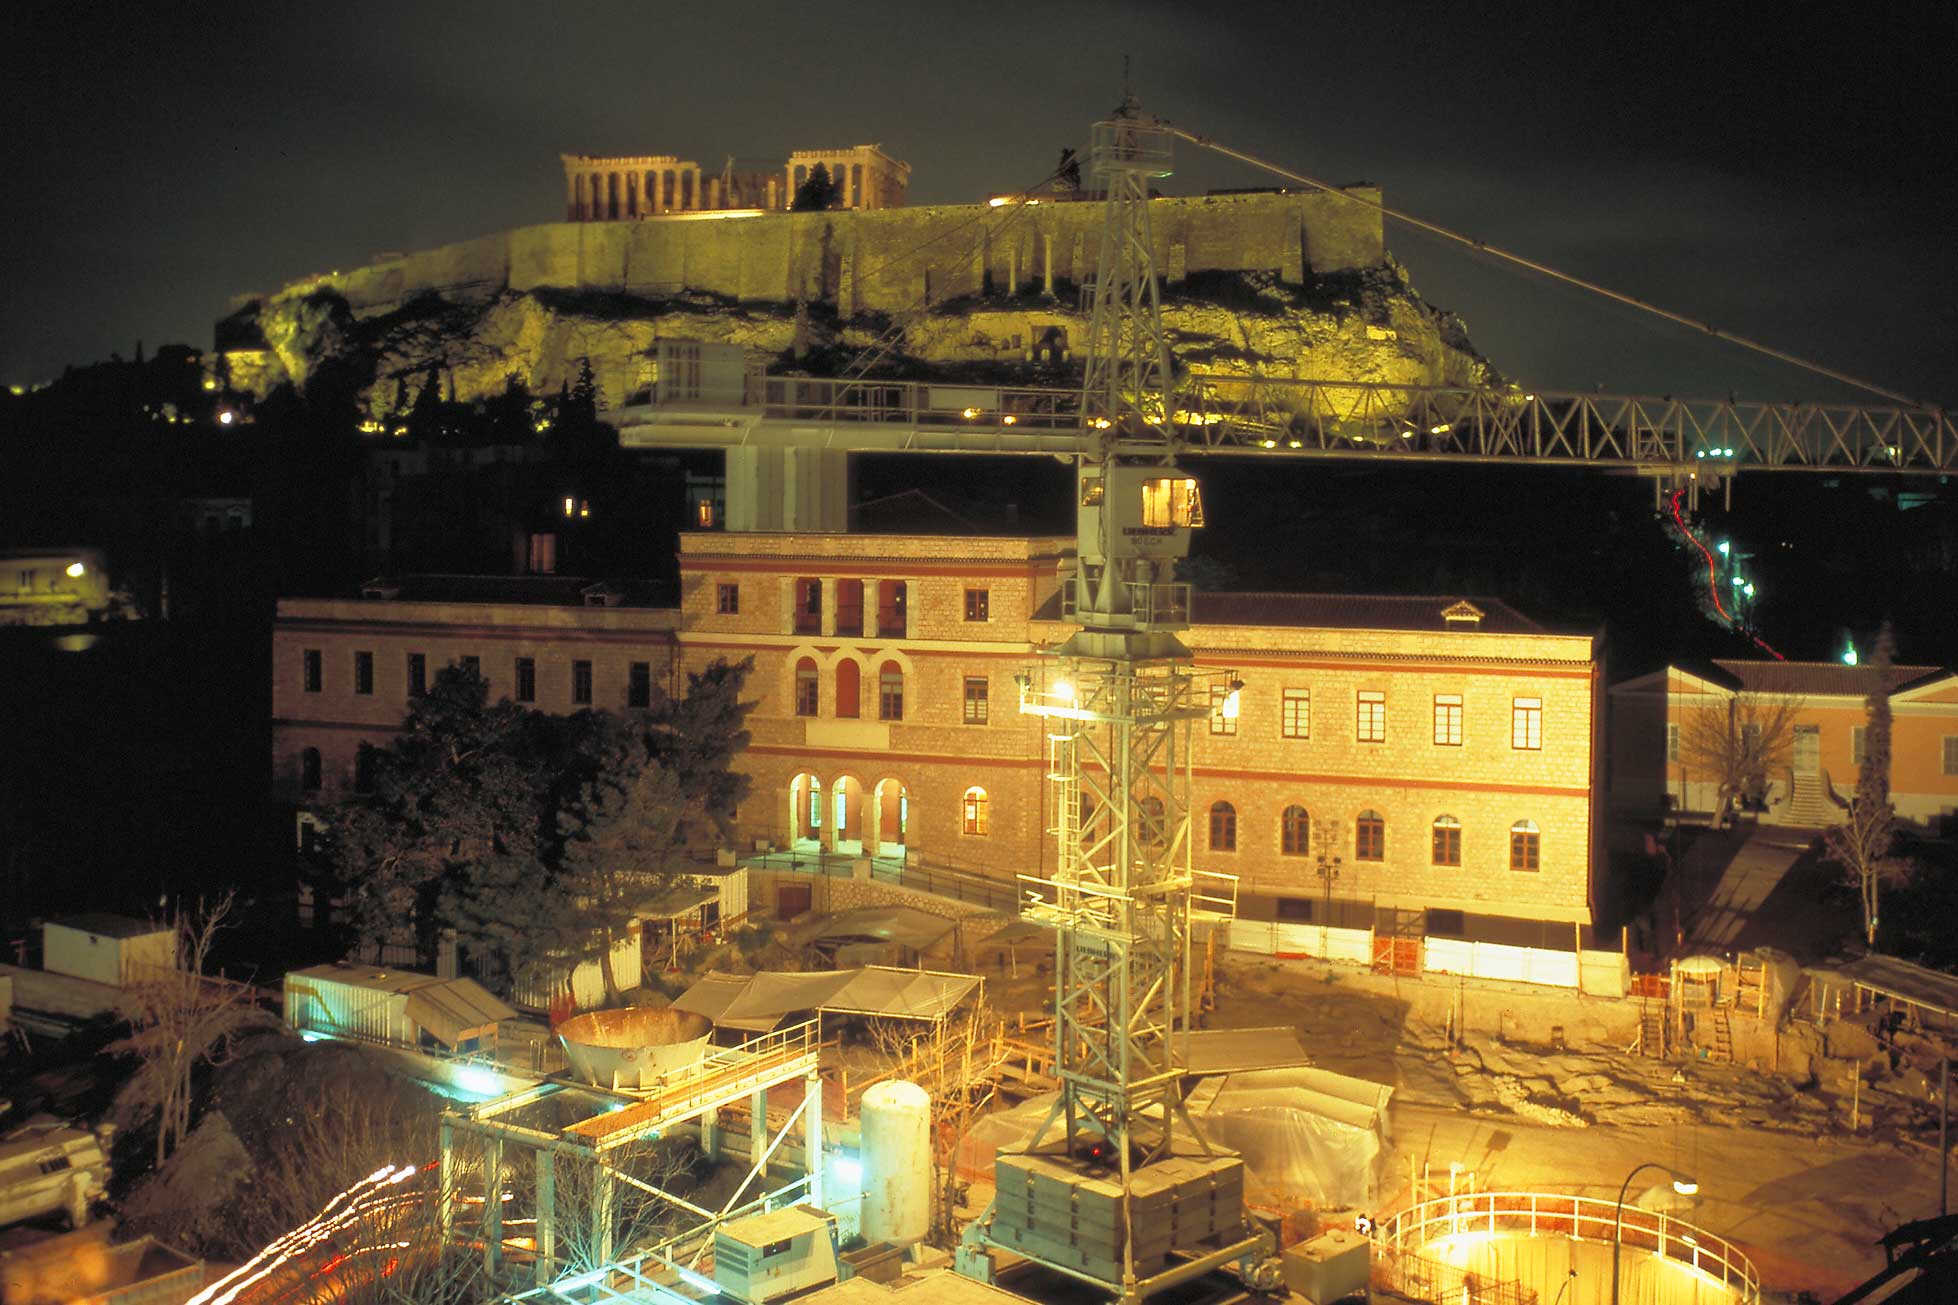 Athens Metro construction site